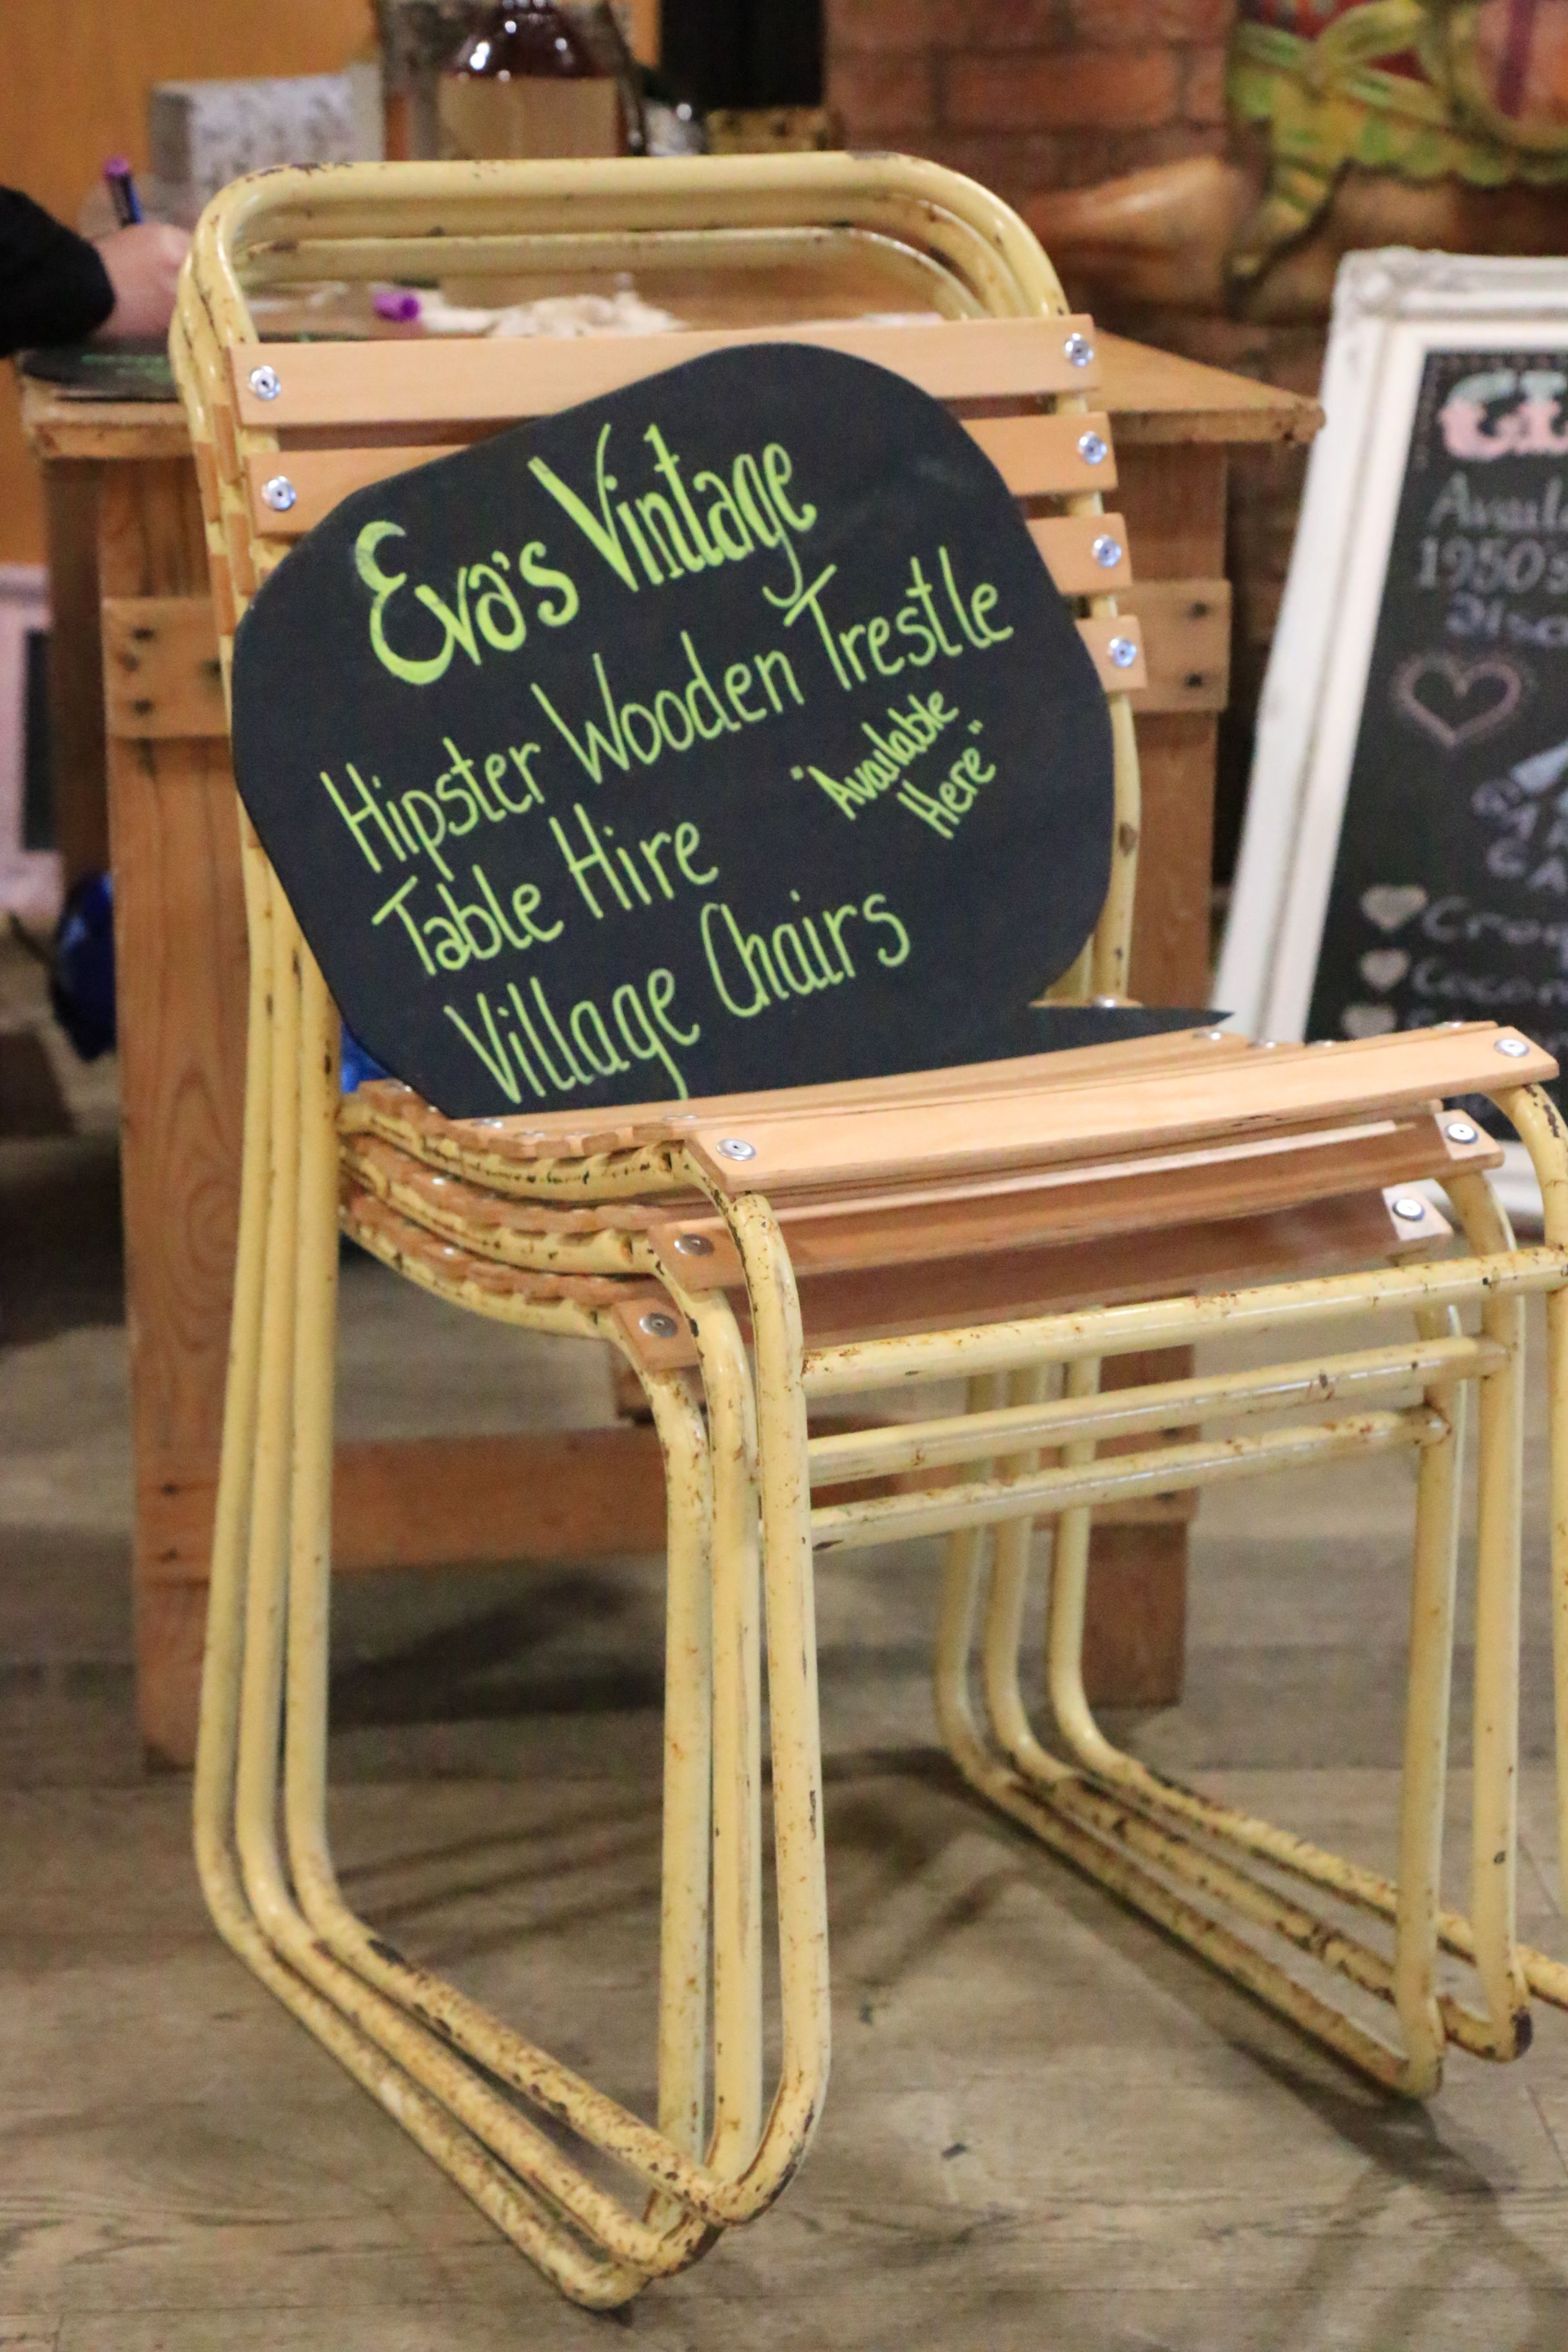 Lovely old village hall chairs with new beech slats for comfort available to hire www evasvintagehire com herefordshire